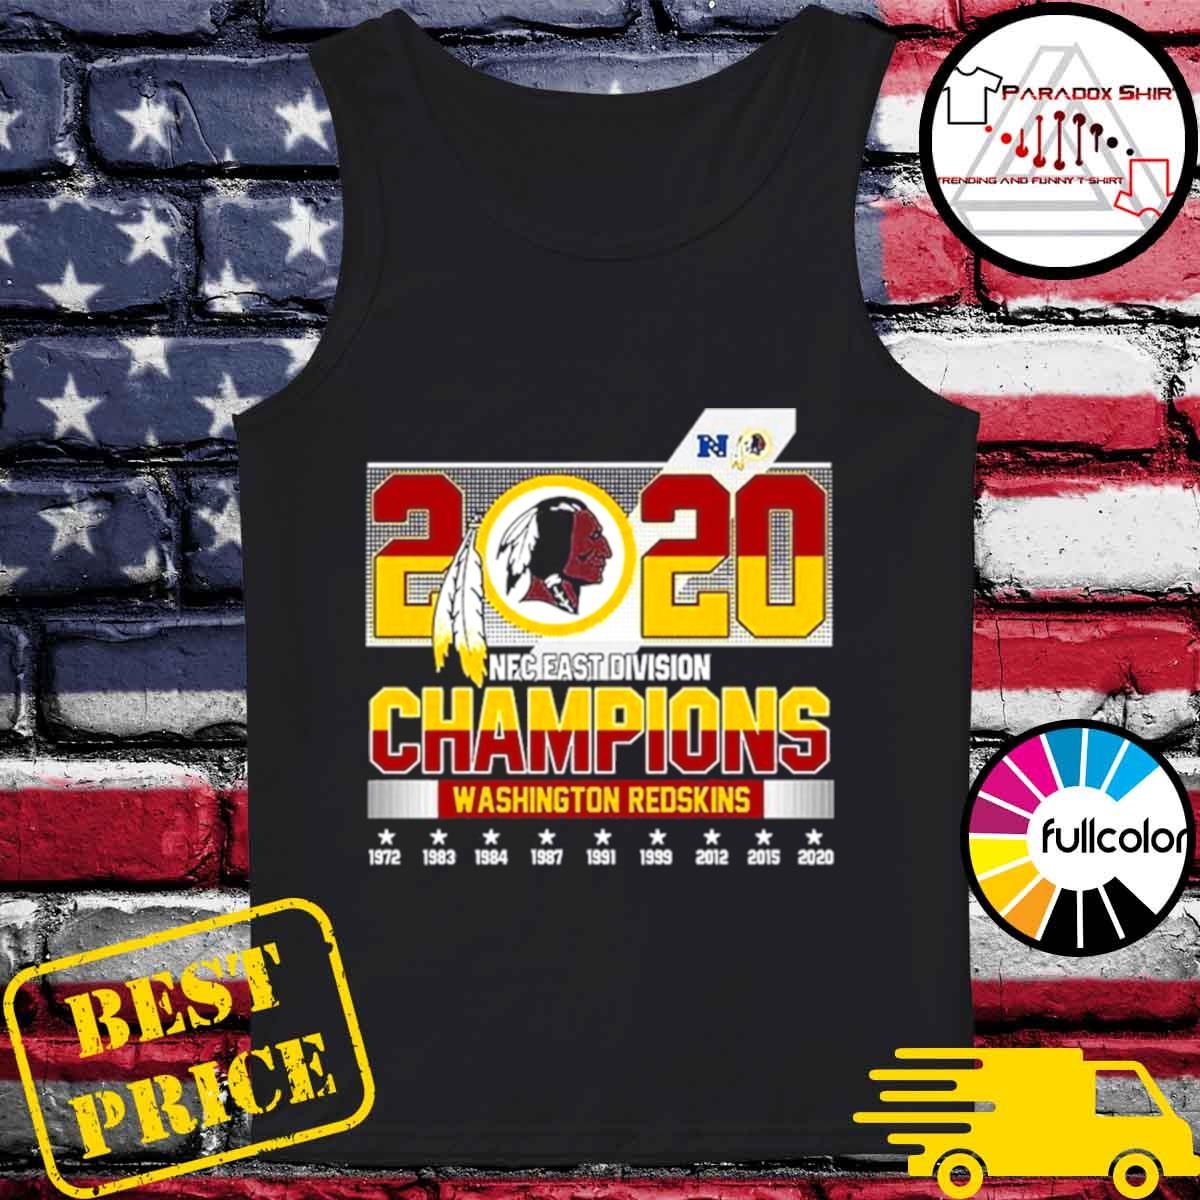 2020 NFC East Division Champions Washington Redskins s Tank-top